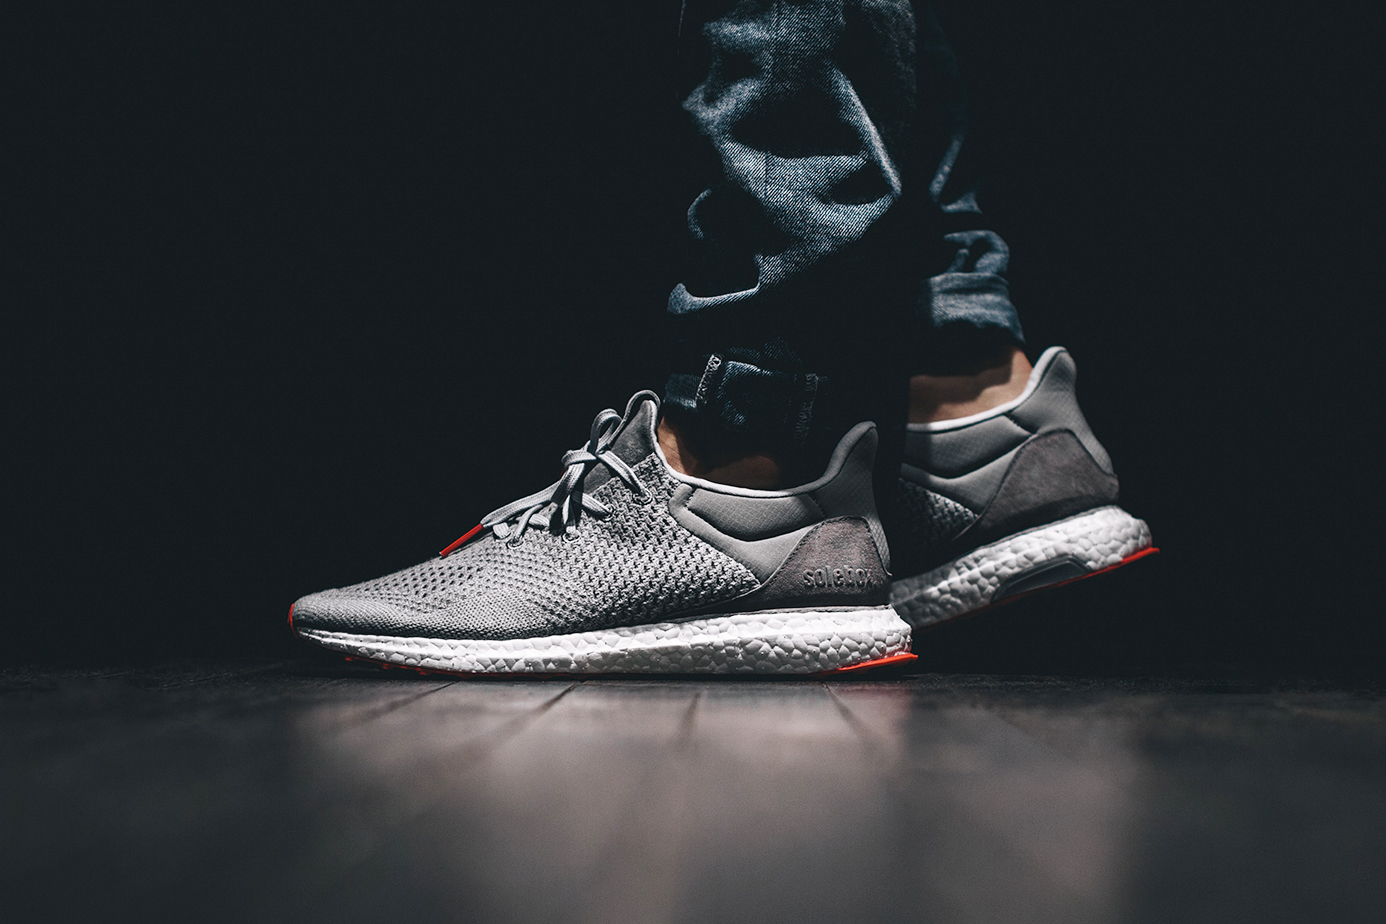 A Closer Look at the Solebox x adidas Consortium Ultra Boost Uncaged